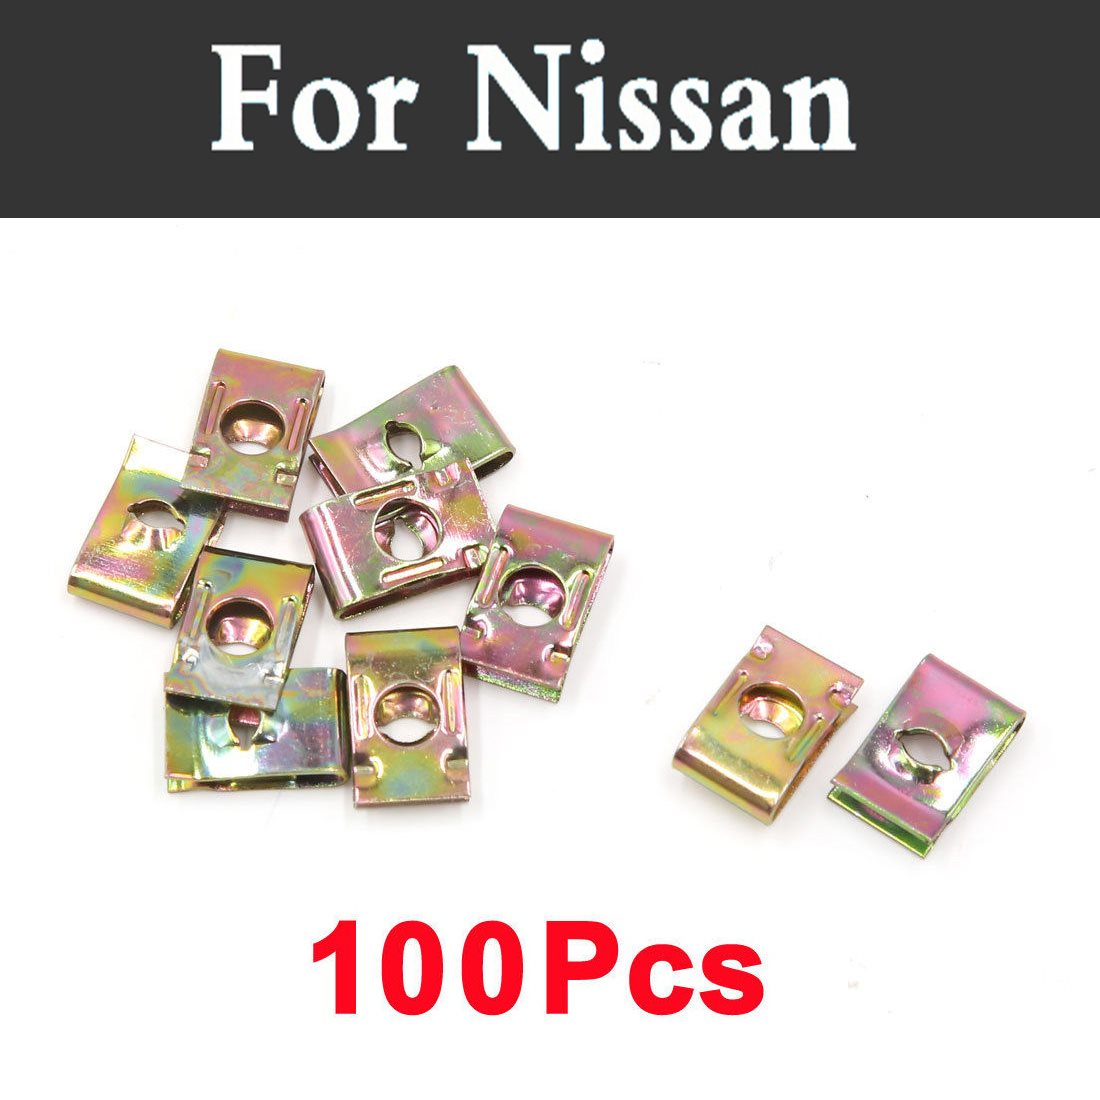 100pcs Car Styling Buckle Metal Screw Nut U-Type Clips Retainer For Nissan Maxima Micra Moco Murano Fairlady Figaro Fuga Leaf